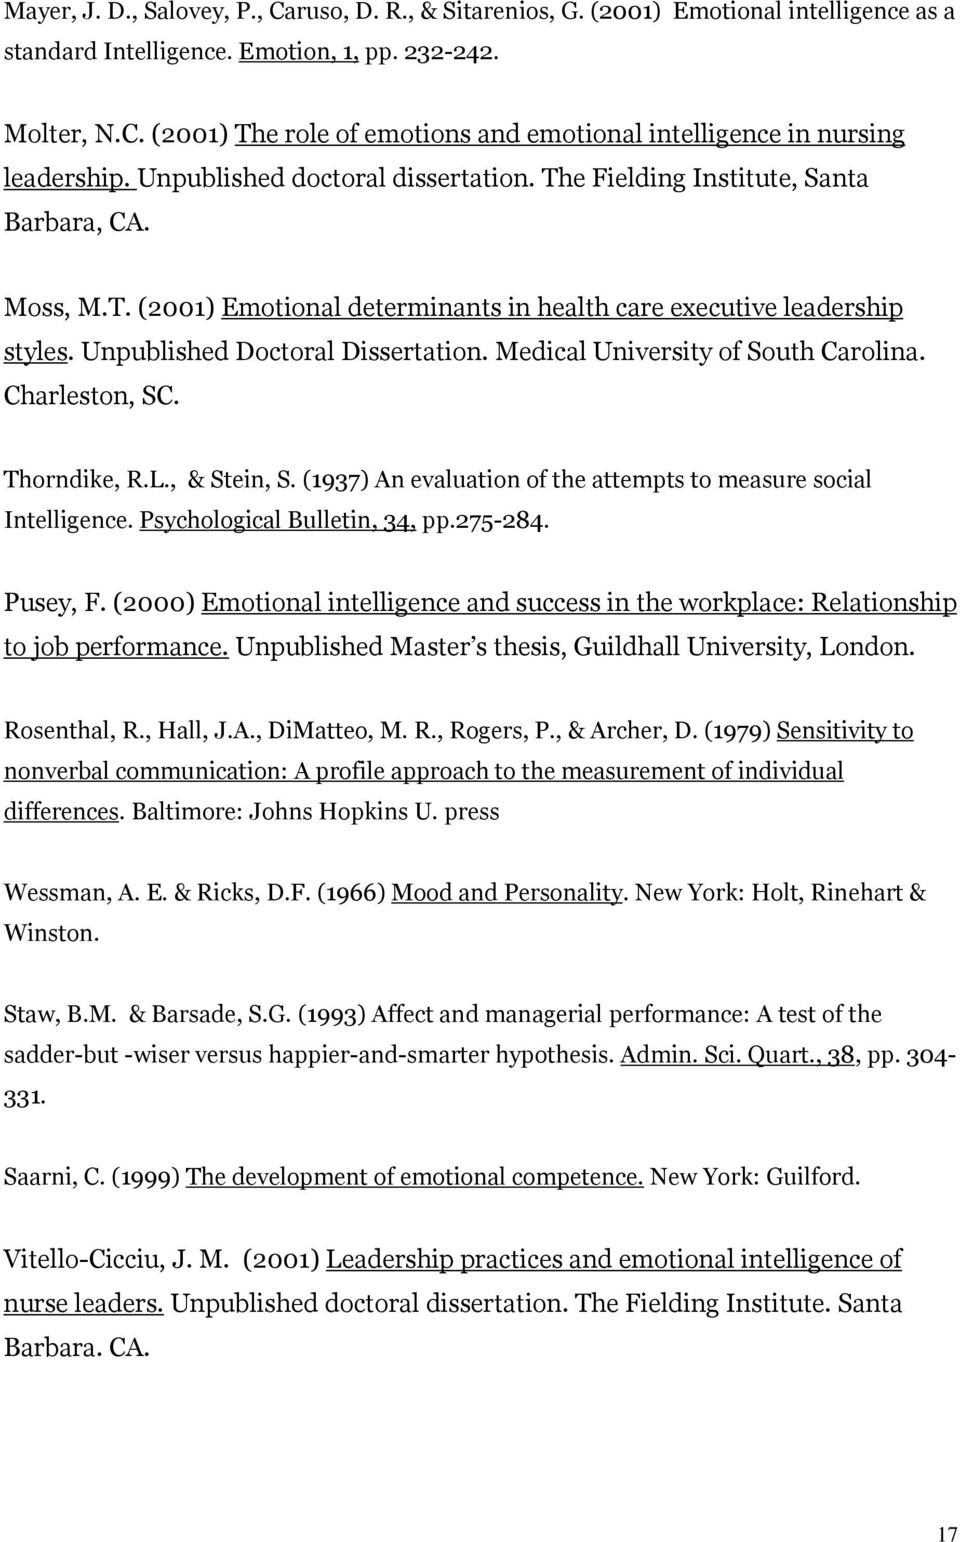 Medical University of South Carolina. Charleston, SC. Thorndike, R.L., & Stein, S. (1937) An evaluation of the attempts to measure social Intelligence. Psychological Bulletin, 34, pp.275-284.